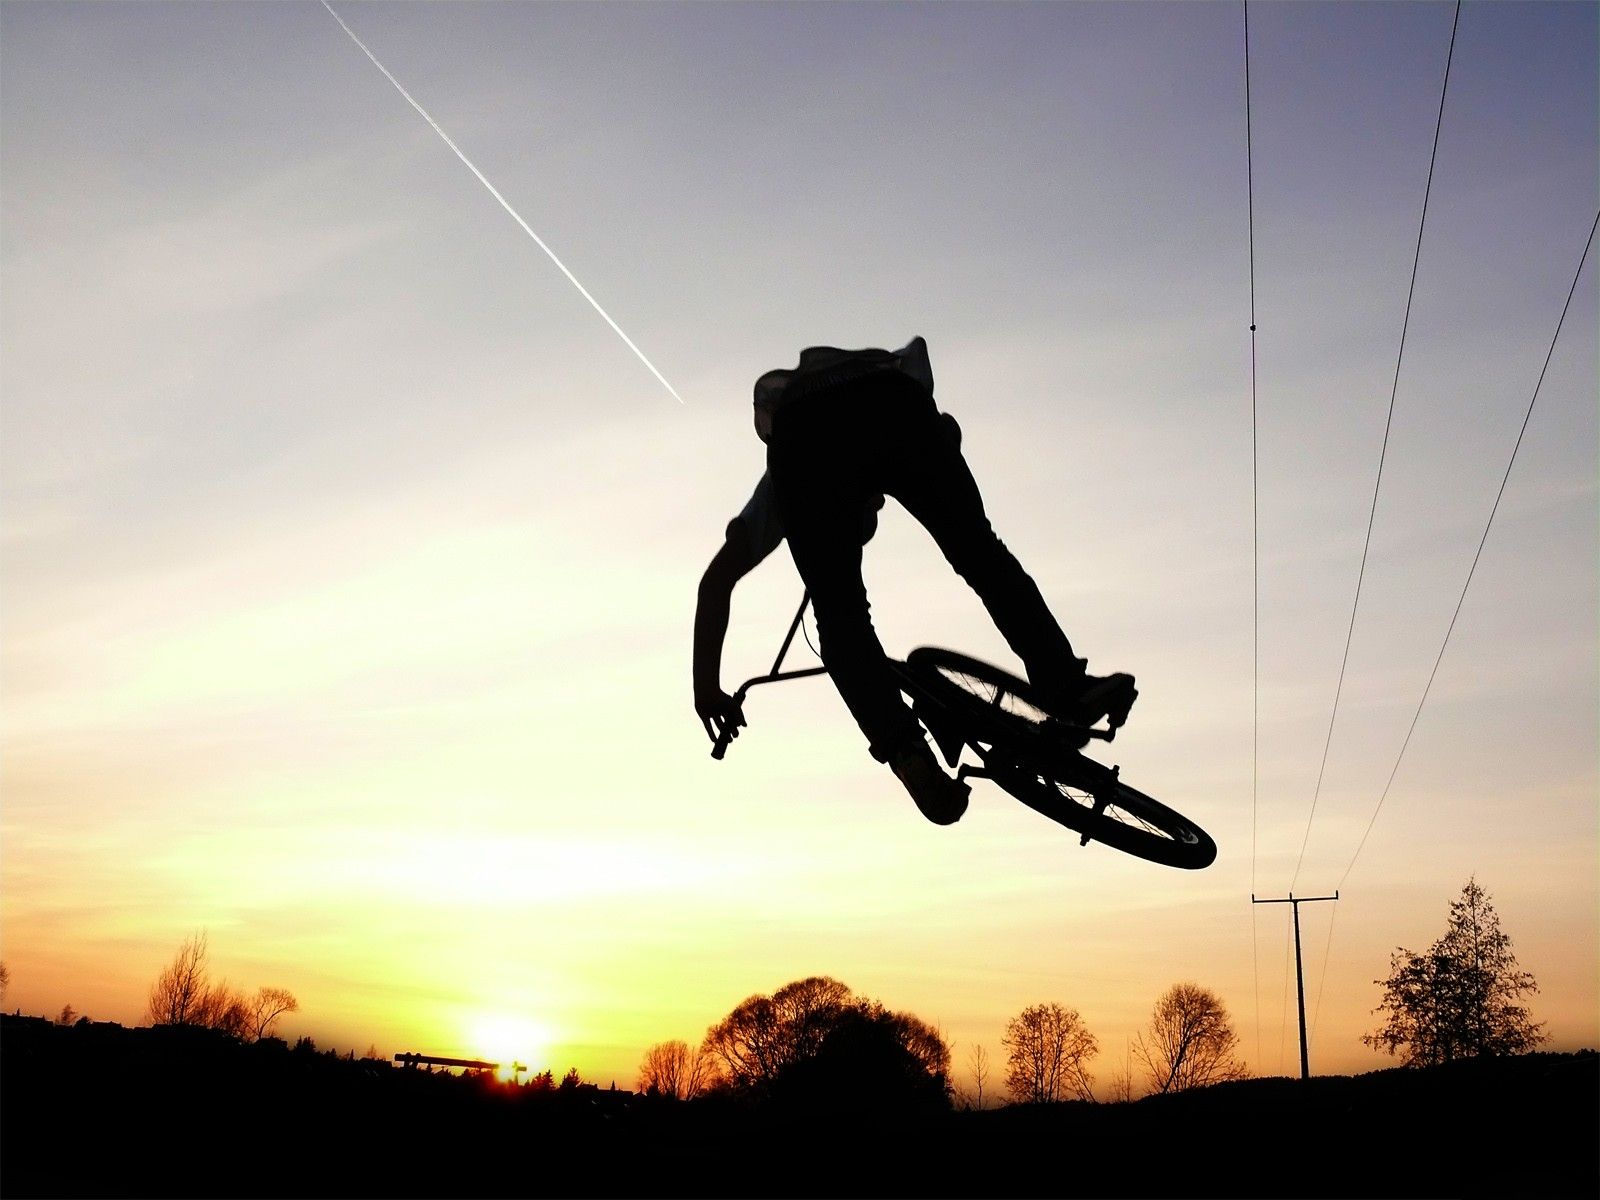 BMX Freestyle Downhill On Nature Wallpaper Dow 8716 Wallpaper 1600x1200